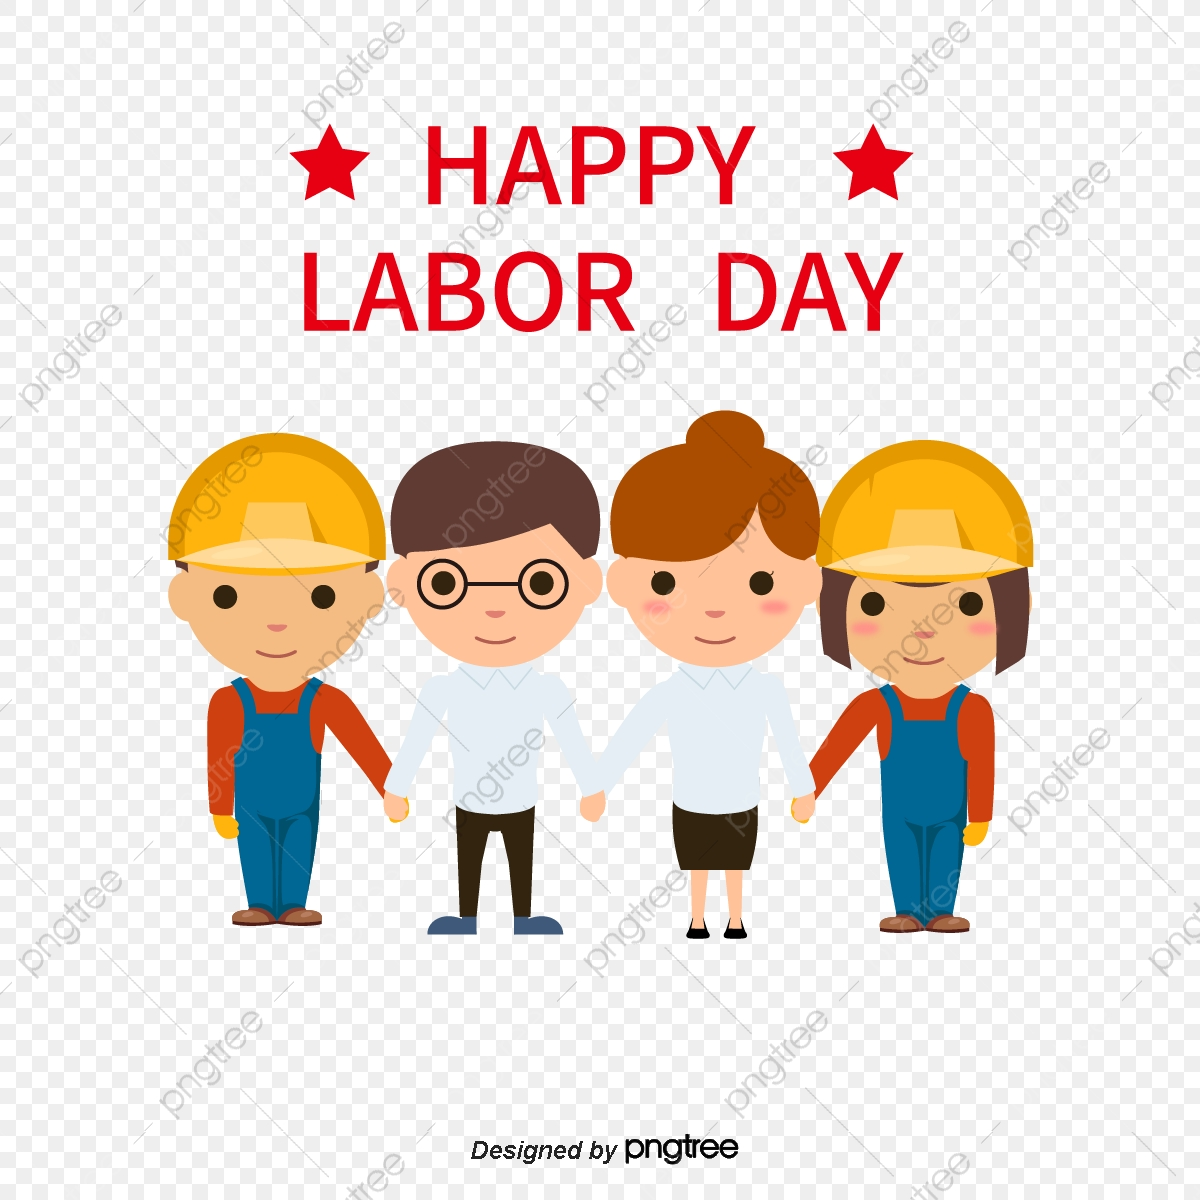 51 Labor Day Character Cartoon Image Cartoon Vector 51 Labor Day Png And Vector With Transparent Background For Free Download